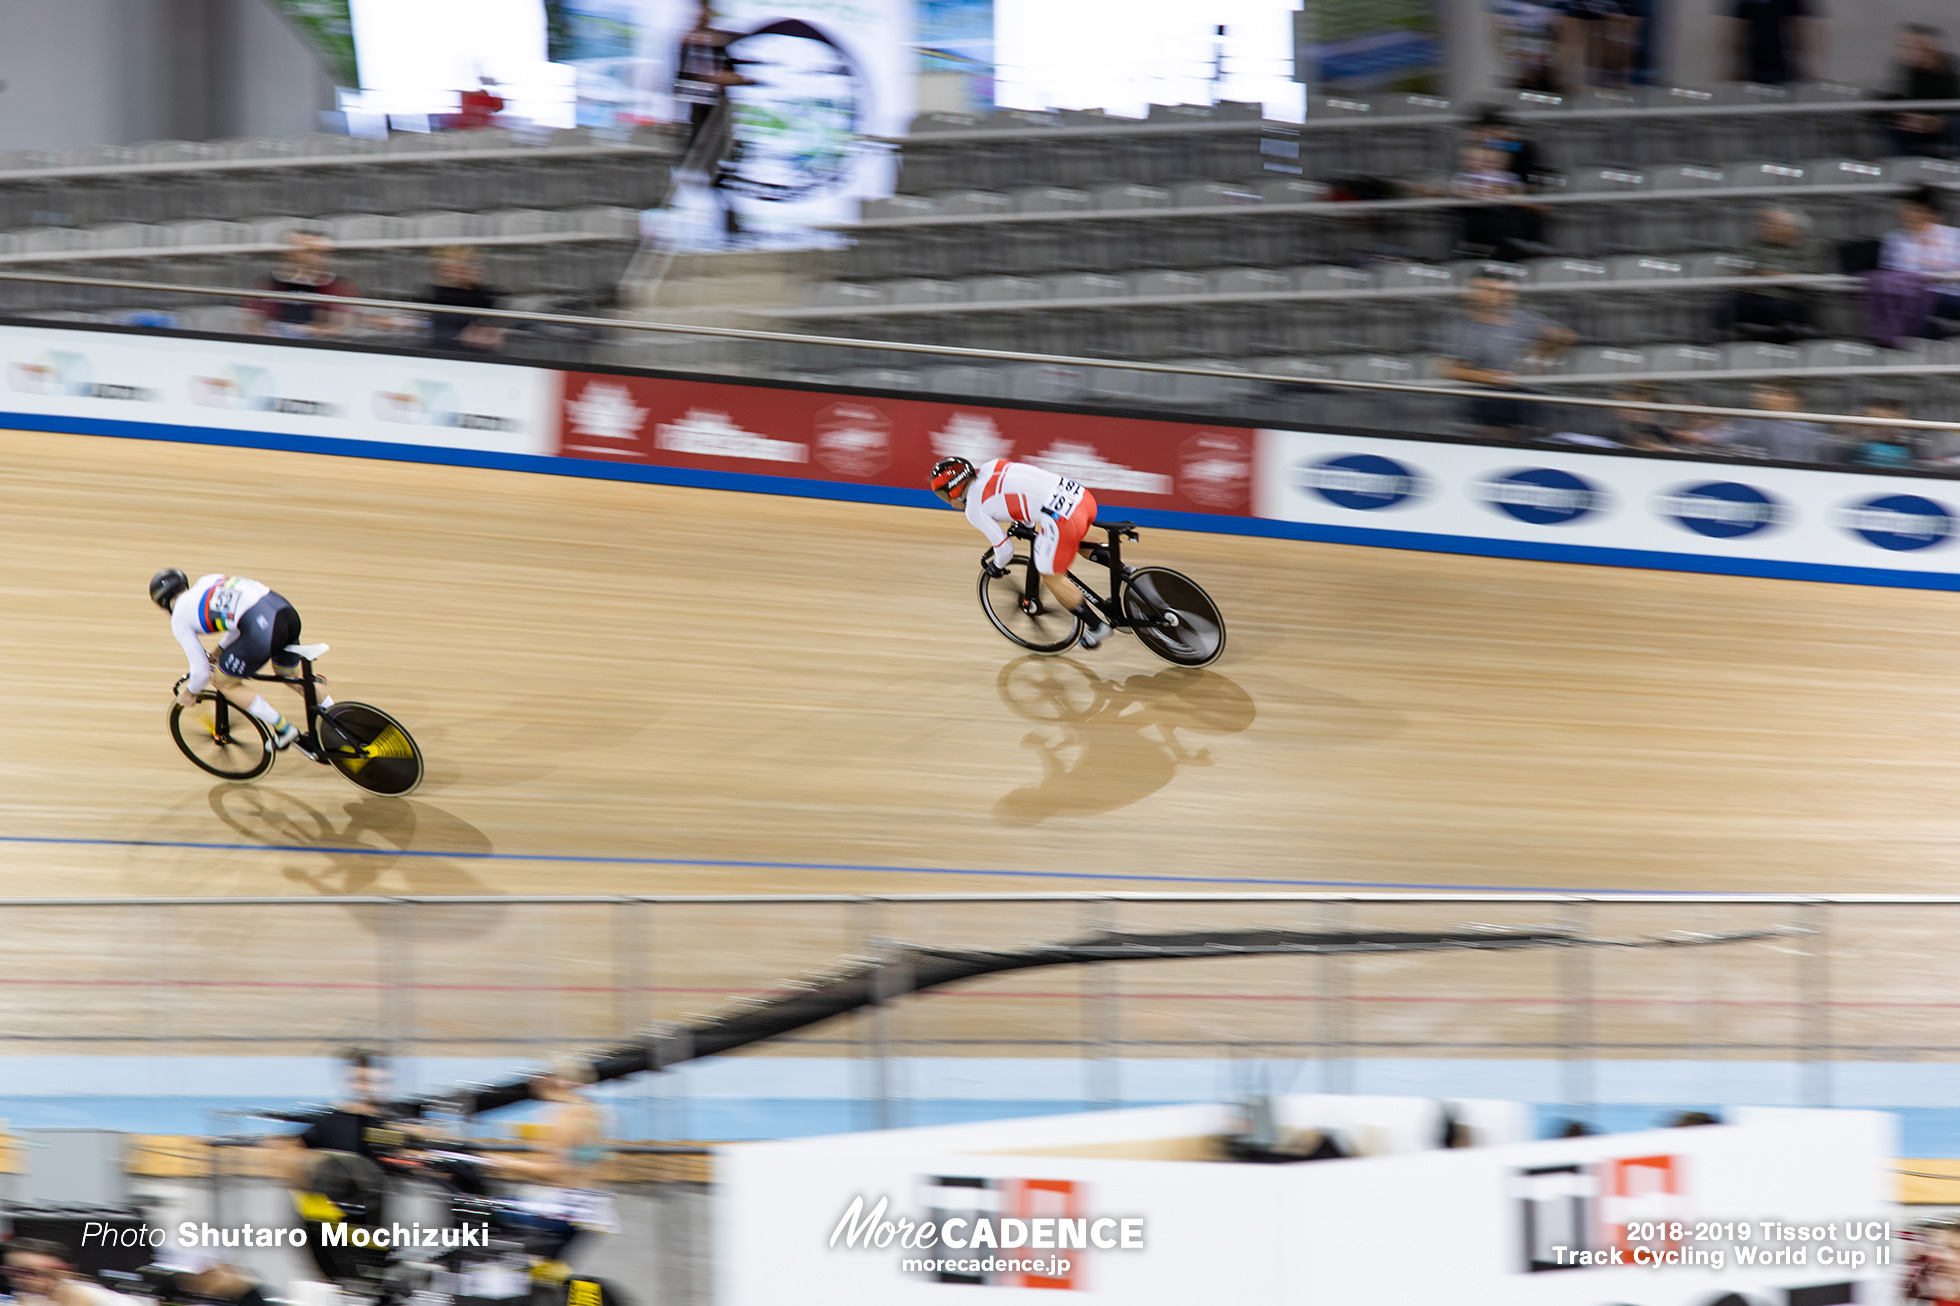 2018-2019 Tissot UCI Track Cycling World Cup II Men's Sprint Quarter Final